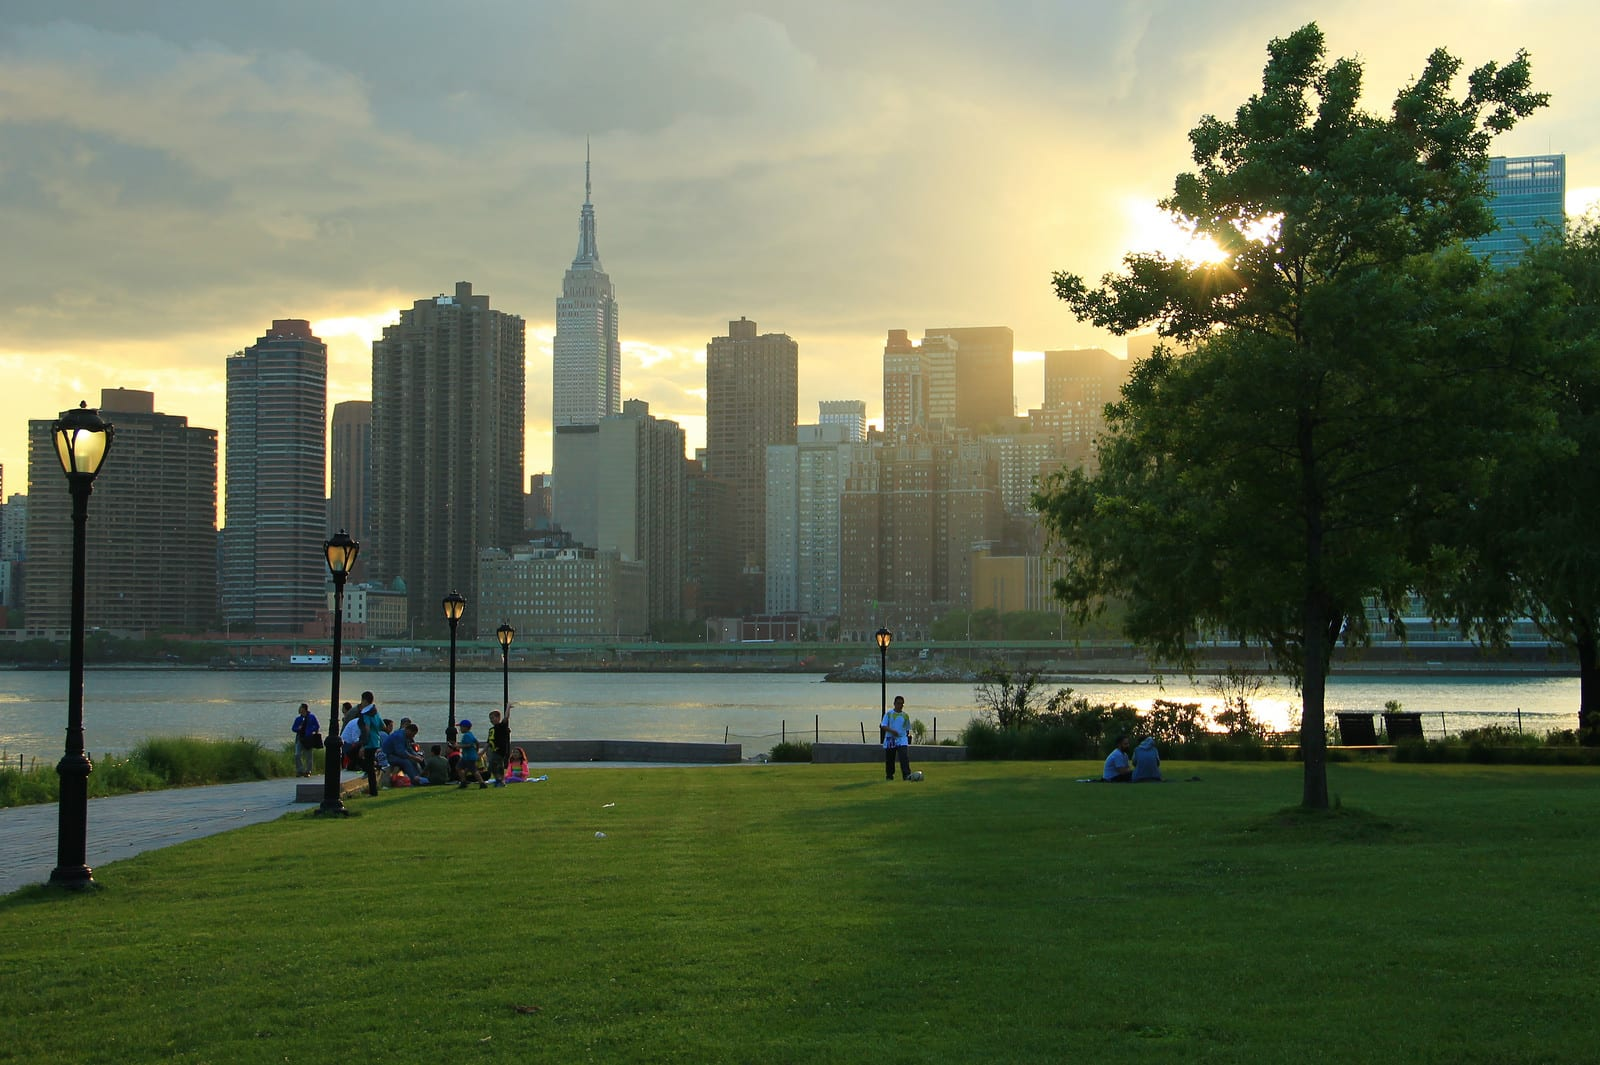 Hunters Point Park by GabrielShore - Sundowner over manhattan